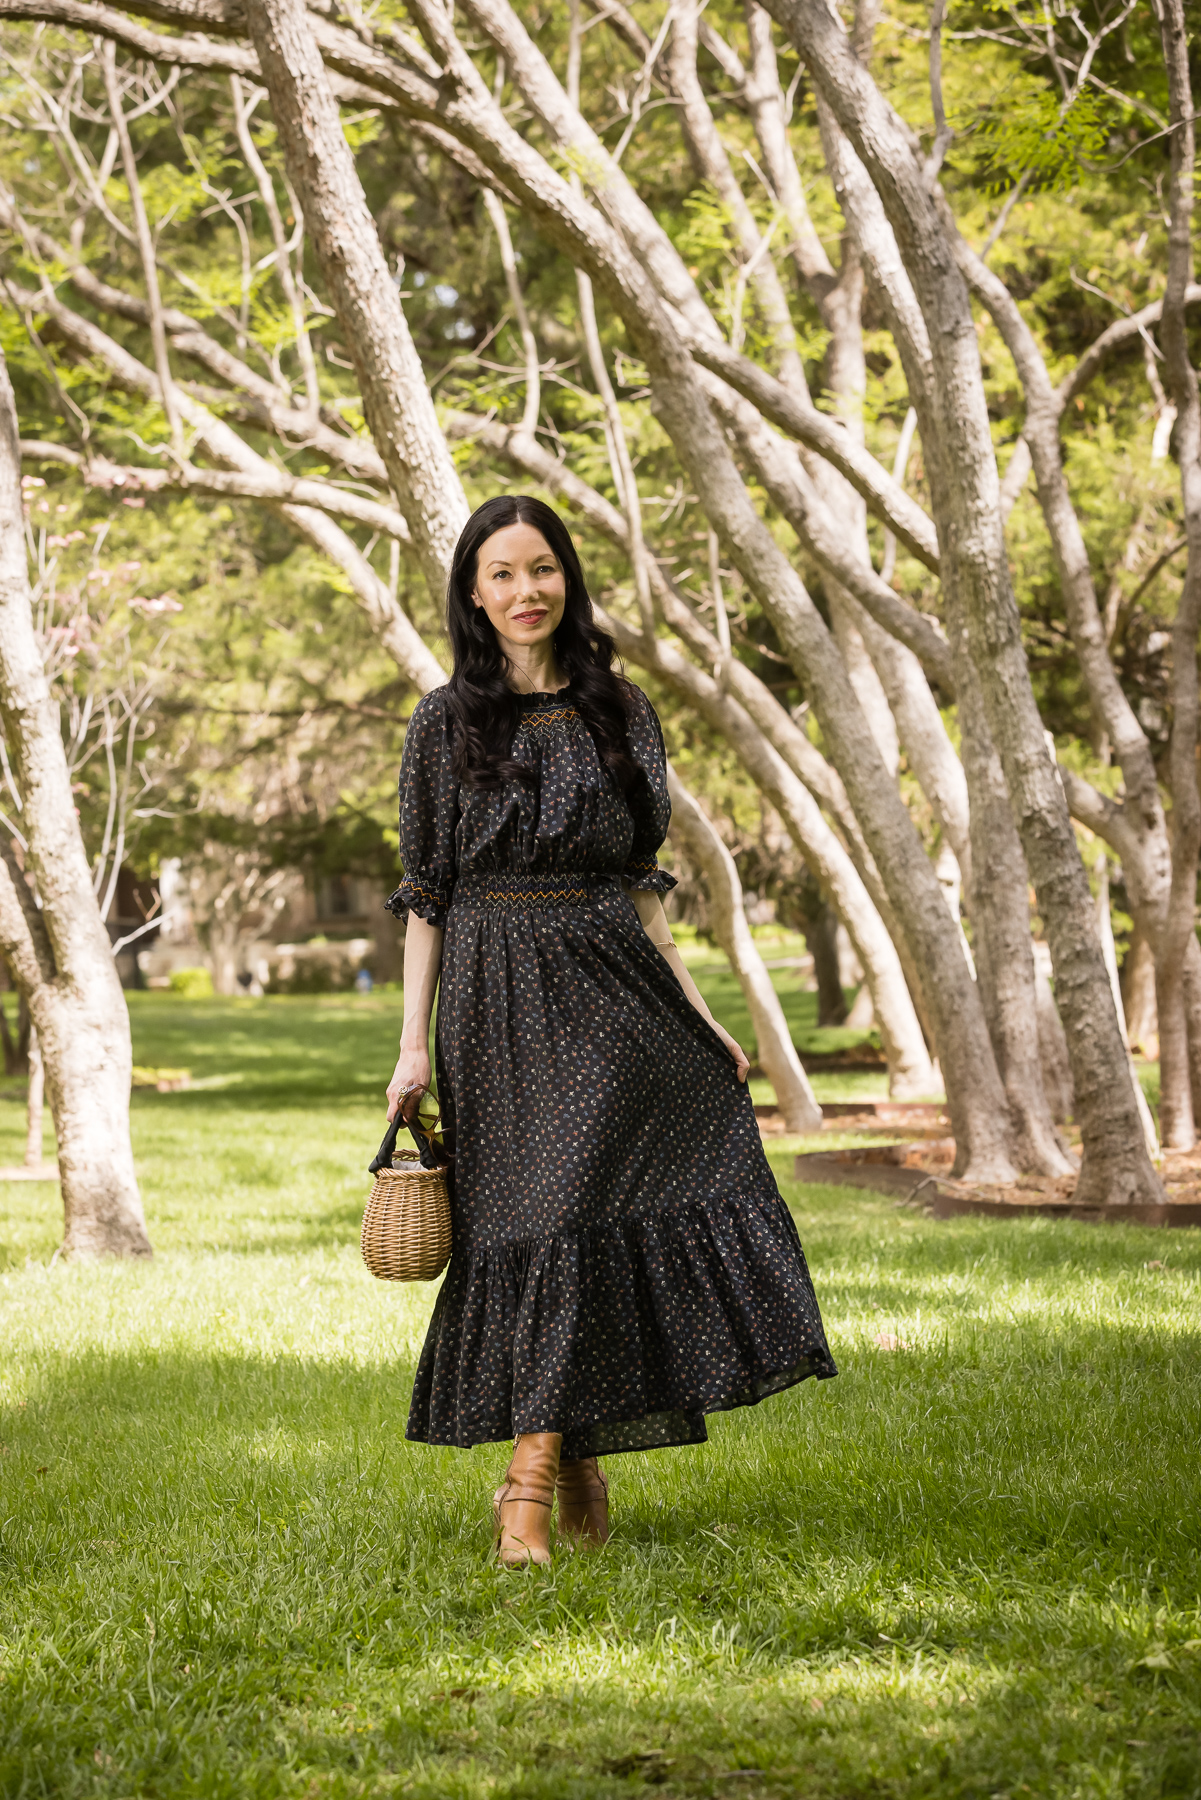 Doen Prairie Dress, Pixie Market Straw Satchel | Prairie Dress by popular Dallas fashion blog, Pretty Little Shoppers: image of a woman walking outside on some grass under some trees and wearing a black Down prairie dress, tan boots, and holding a woven handbag.